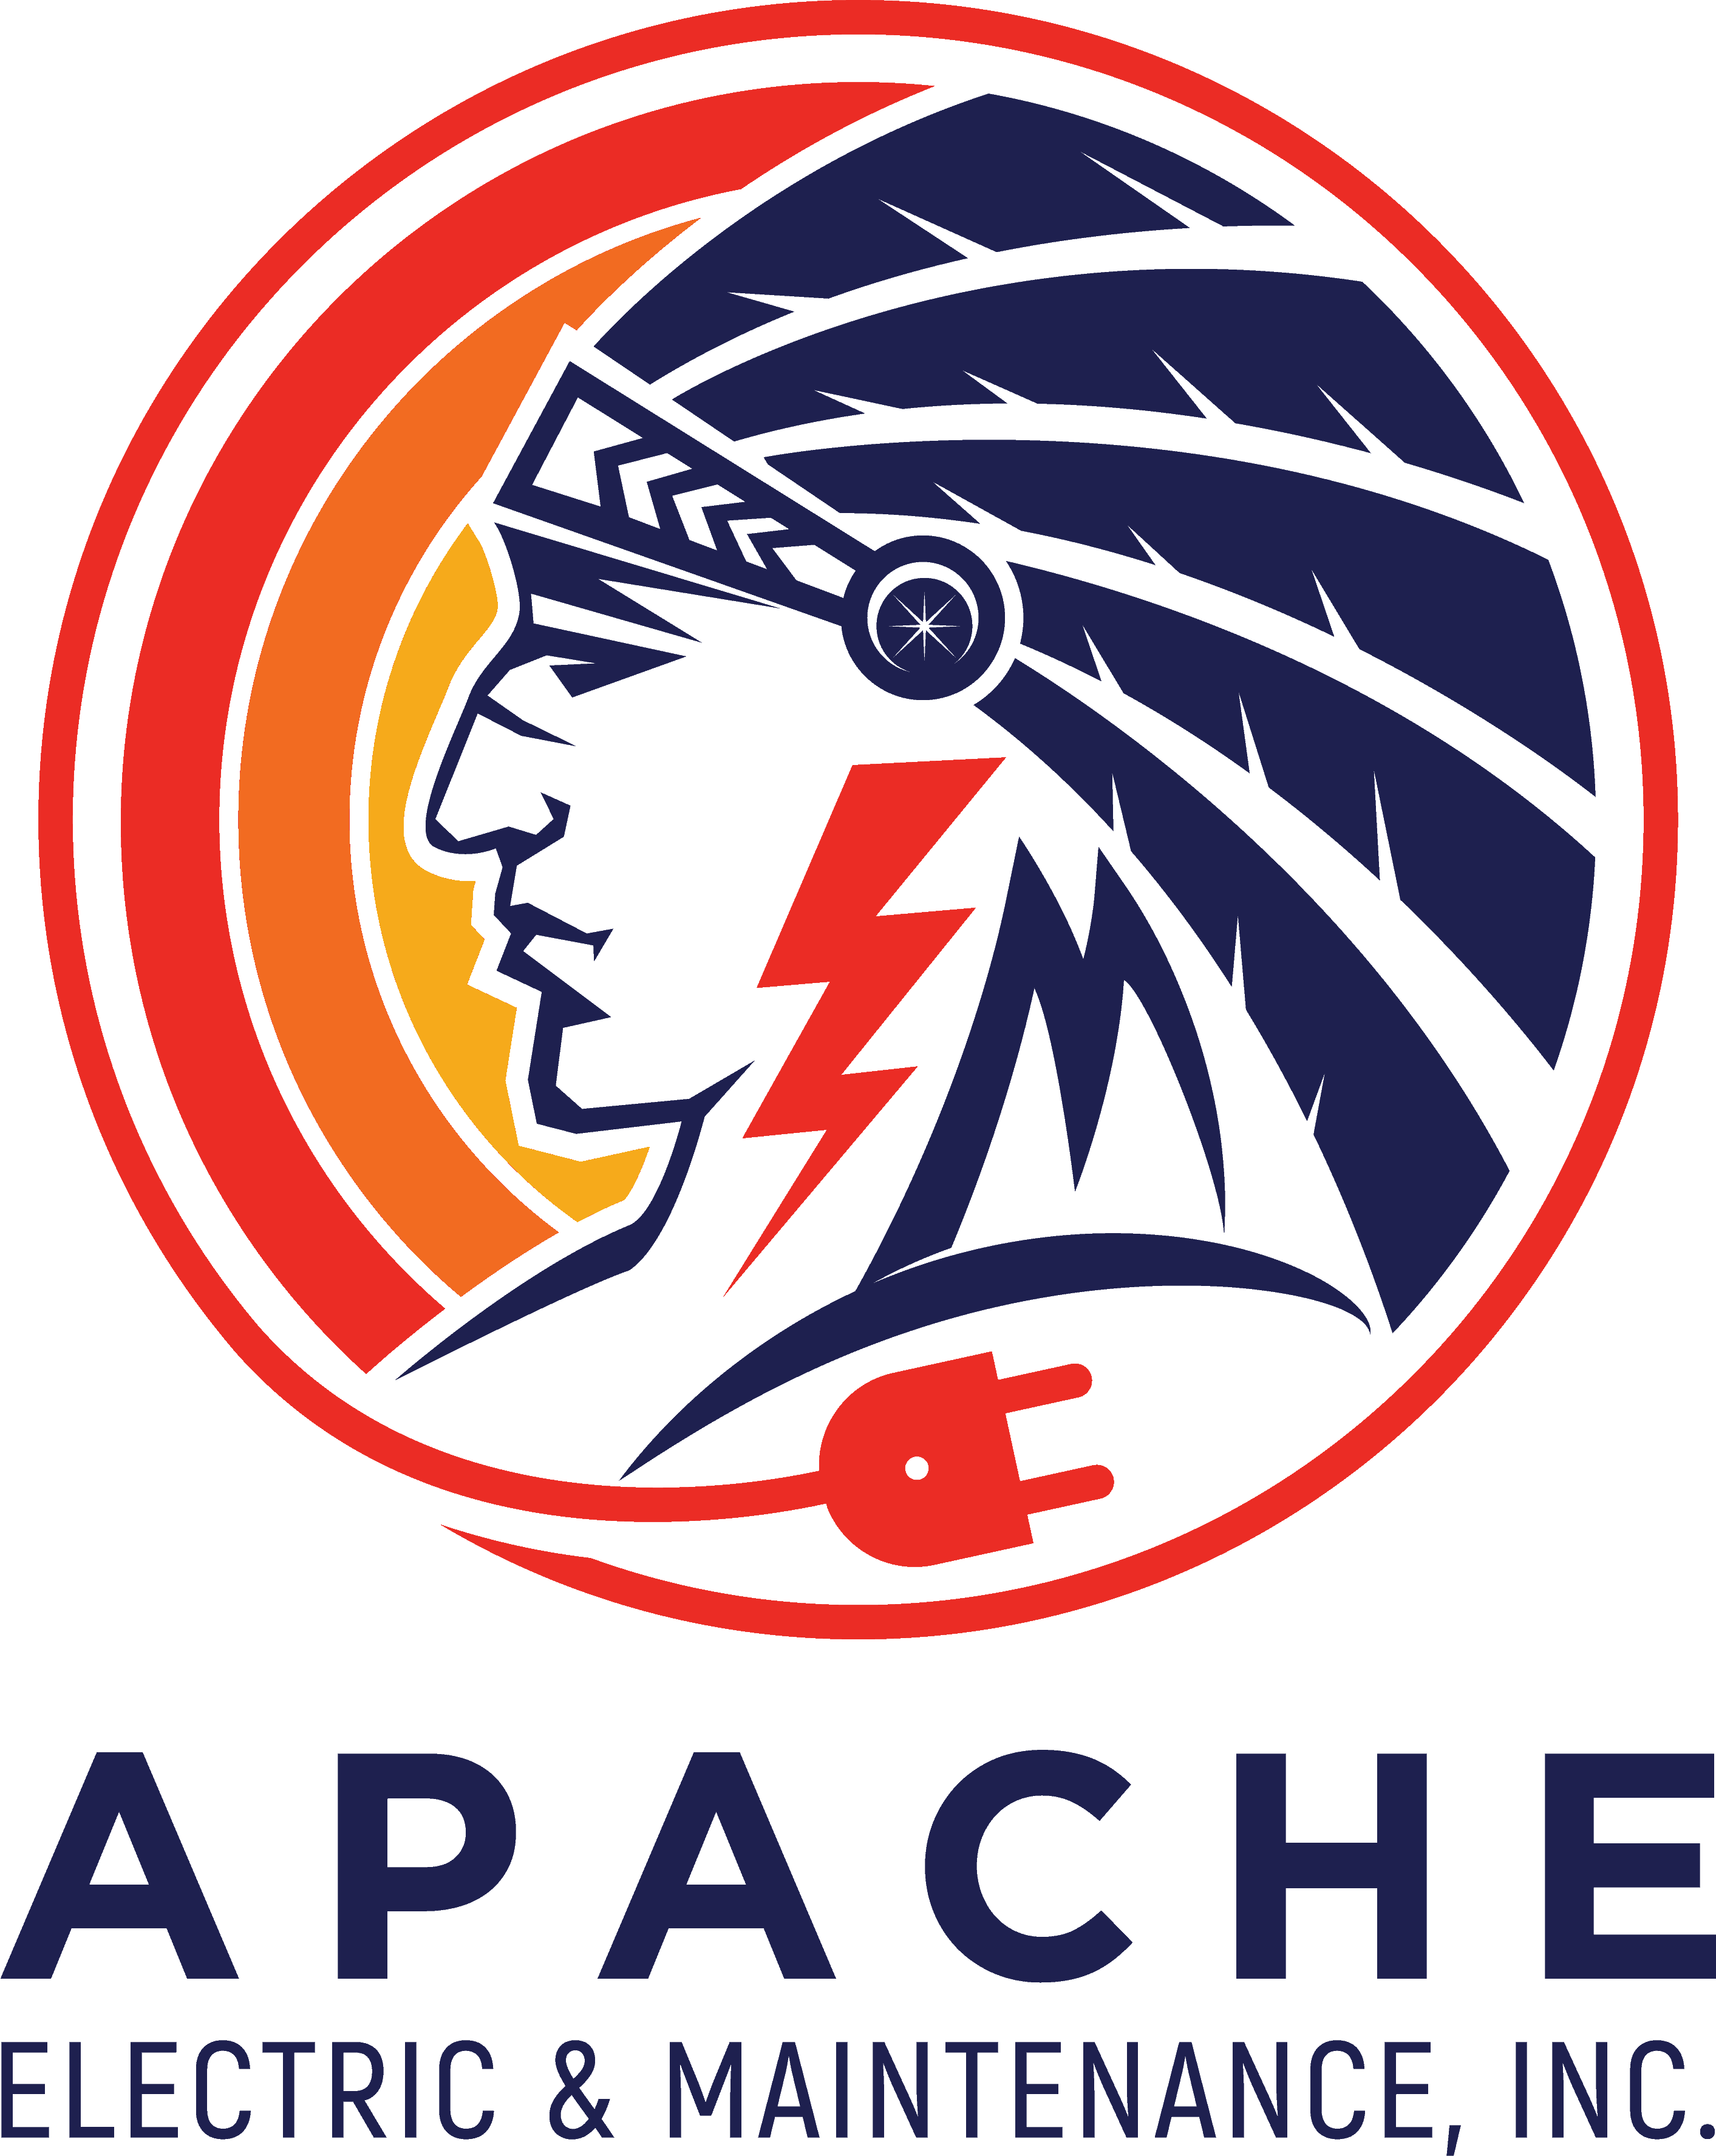 Apache Electric & Maintenance, Inc. Logo